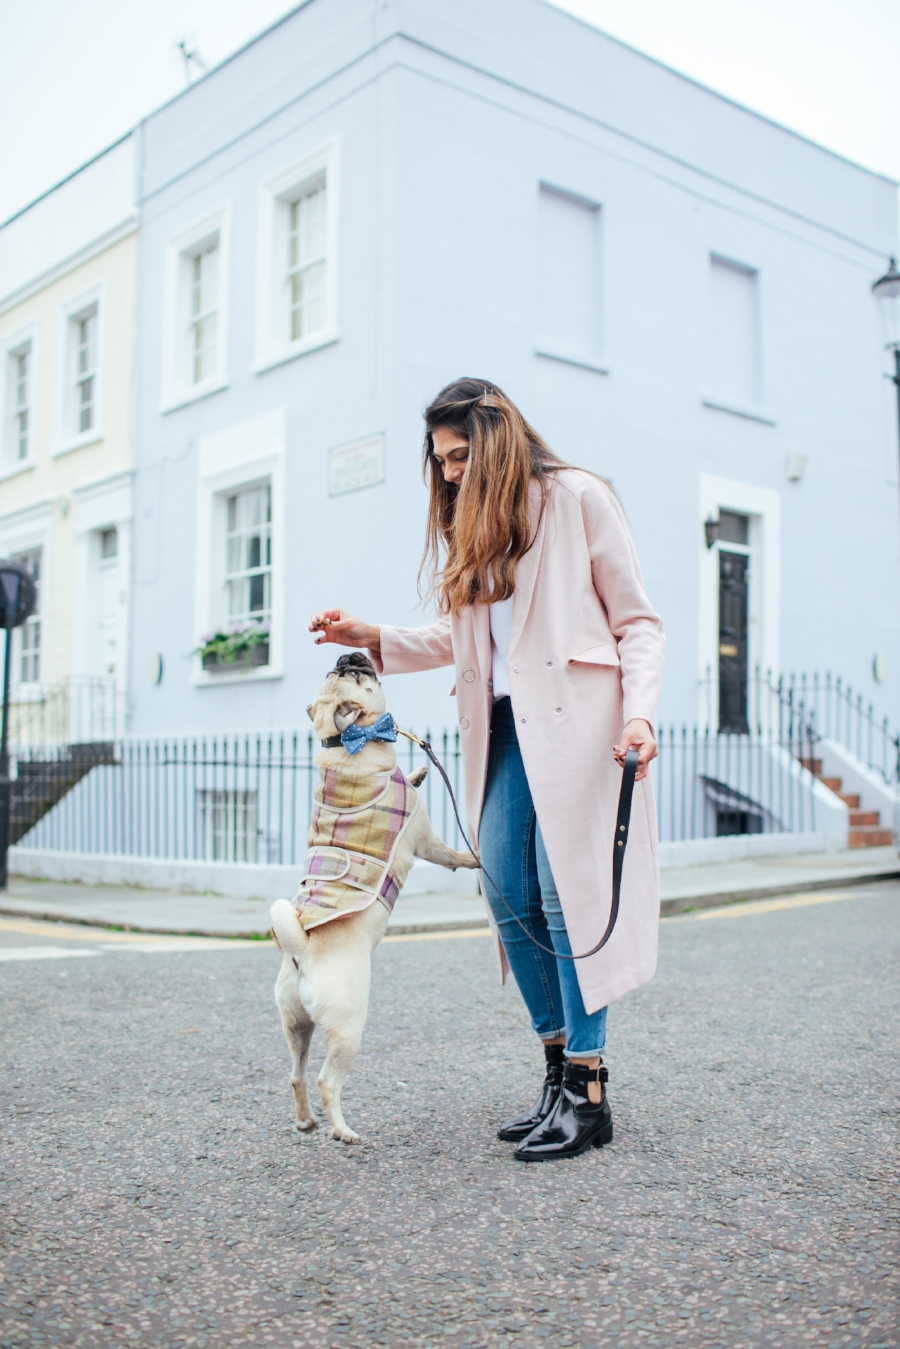 dogblog-london-bestdogbloginlondon-dogfashion-dogfashionblog-fashionandlifestyle-streetstyle-pugswag-humanandhound-pink-fallfashion-falltrends-dogsinclothes-dapperdogs-pug-puglife-bestdressedpug-fashionblogger-newyork-uk-pinkwintercoat-puglife-twinning-bestdressedpug-awesome-best-bestdogbloglondon-dogfashionlondon-coolestdogblog-cooldogs-vintagecar-mint-topdogbloglondon-bestdogblog